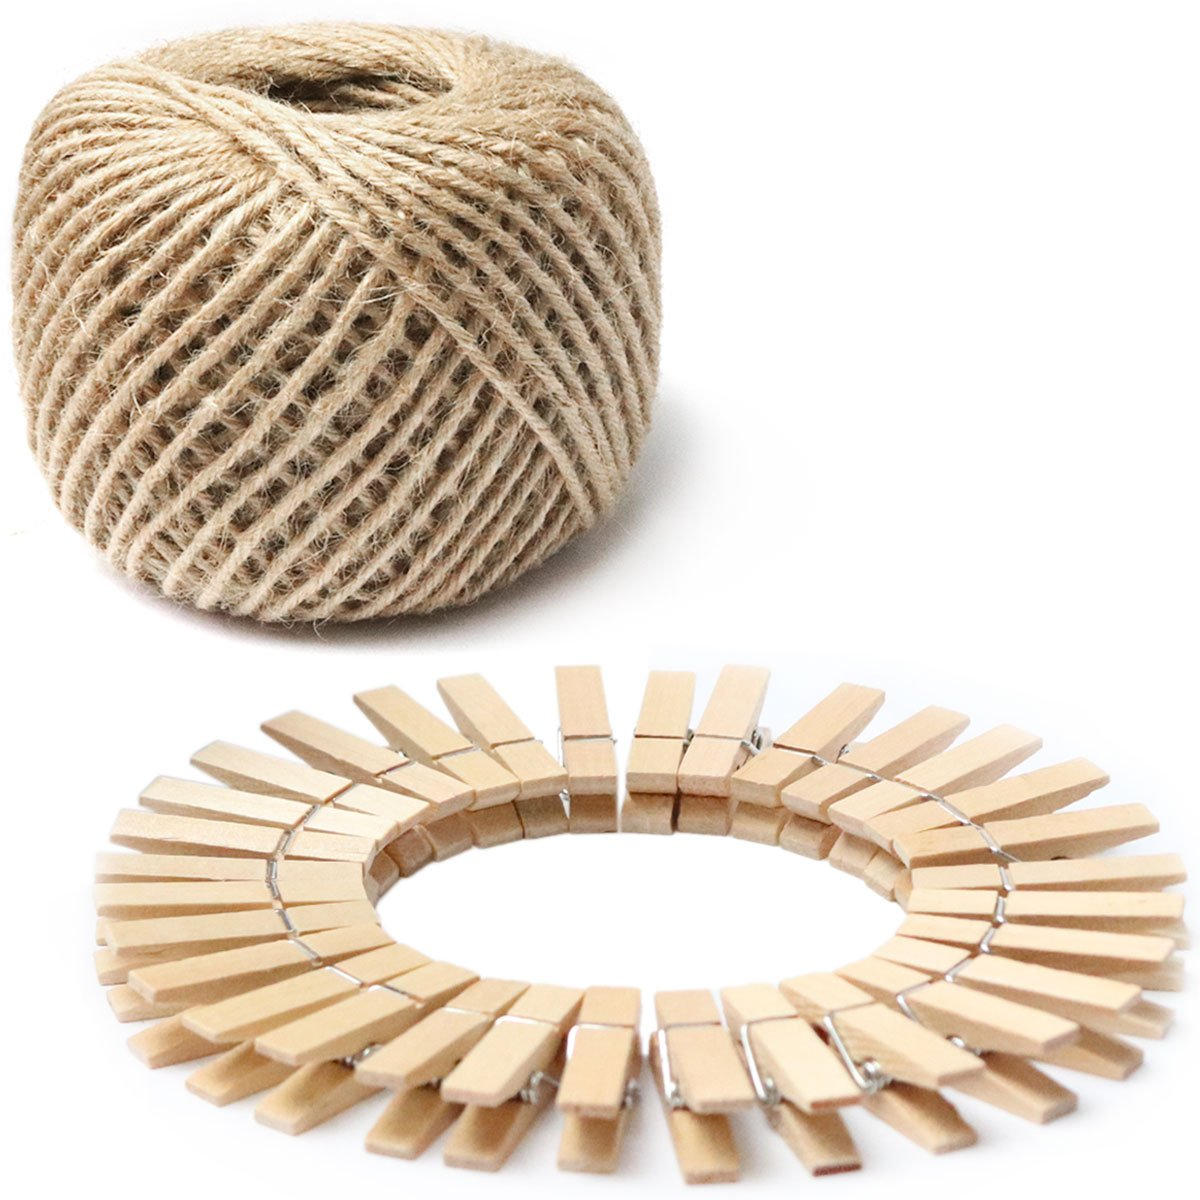 Hanging Photos 1.4 Inch Photo Paper Peg Pin Craft Clips with 320ft Natural Twine for Scrapbooking Natural Color Arts /& Crafts 100pcs Mini Natural Wooden Clothespins with Jute Twine